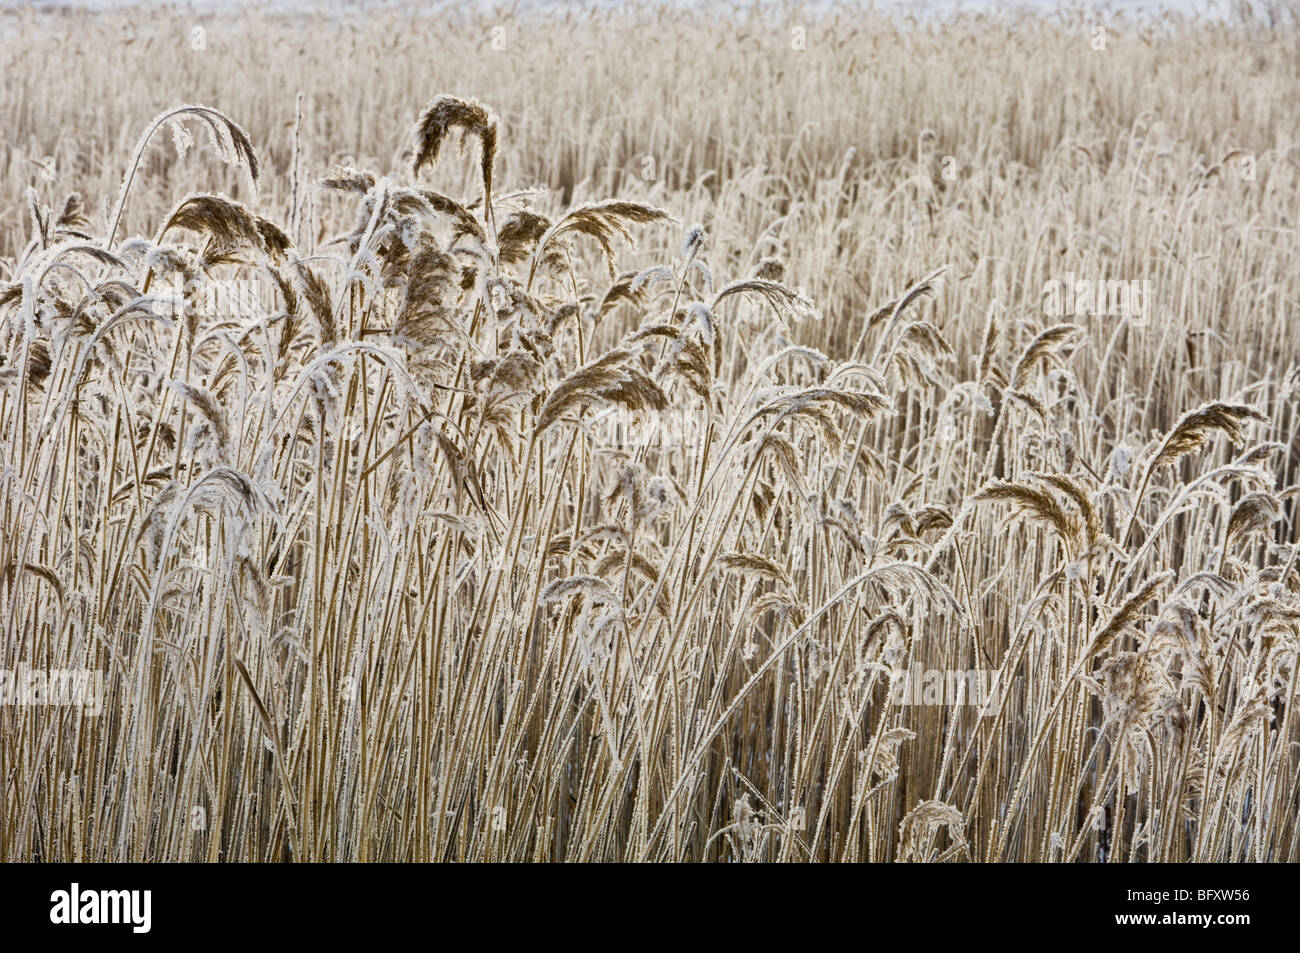 Frosted common reed colony, Greater Sudbury, Ontario, Canada - Stock Image